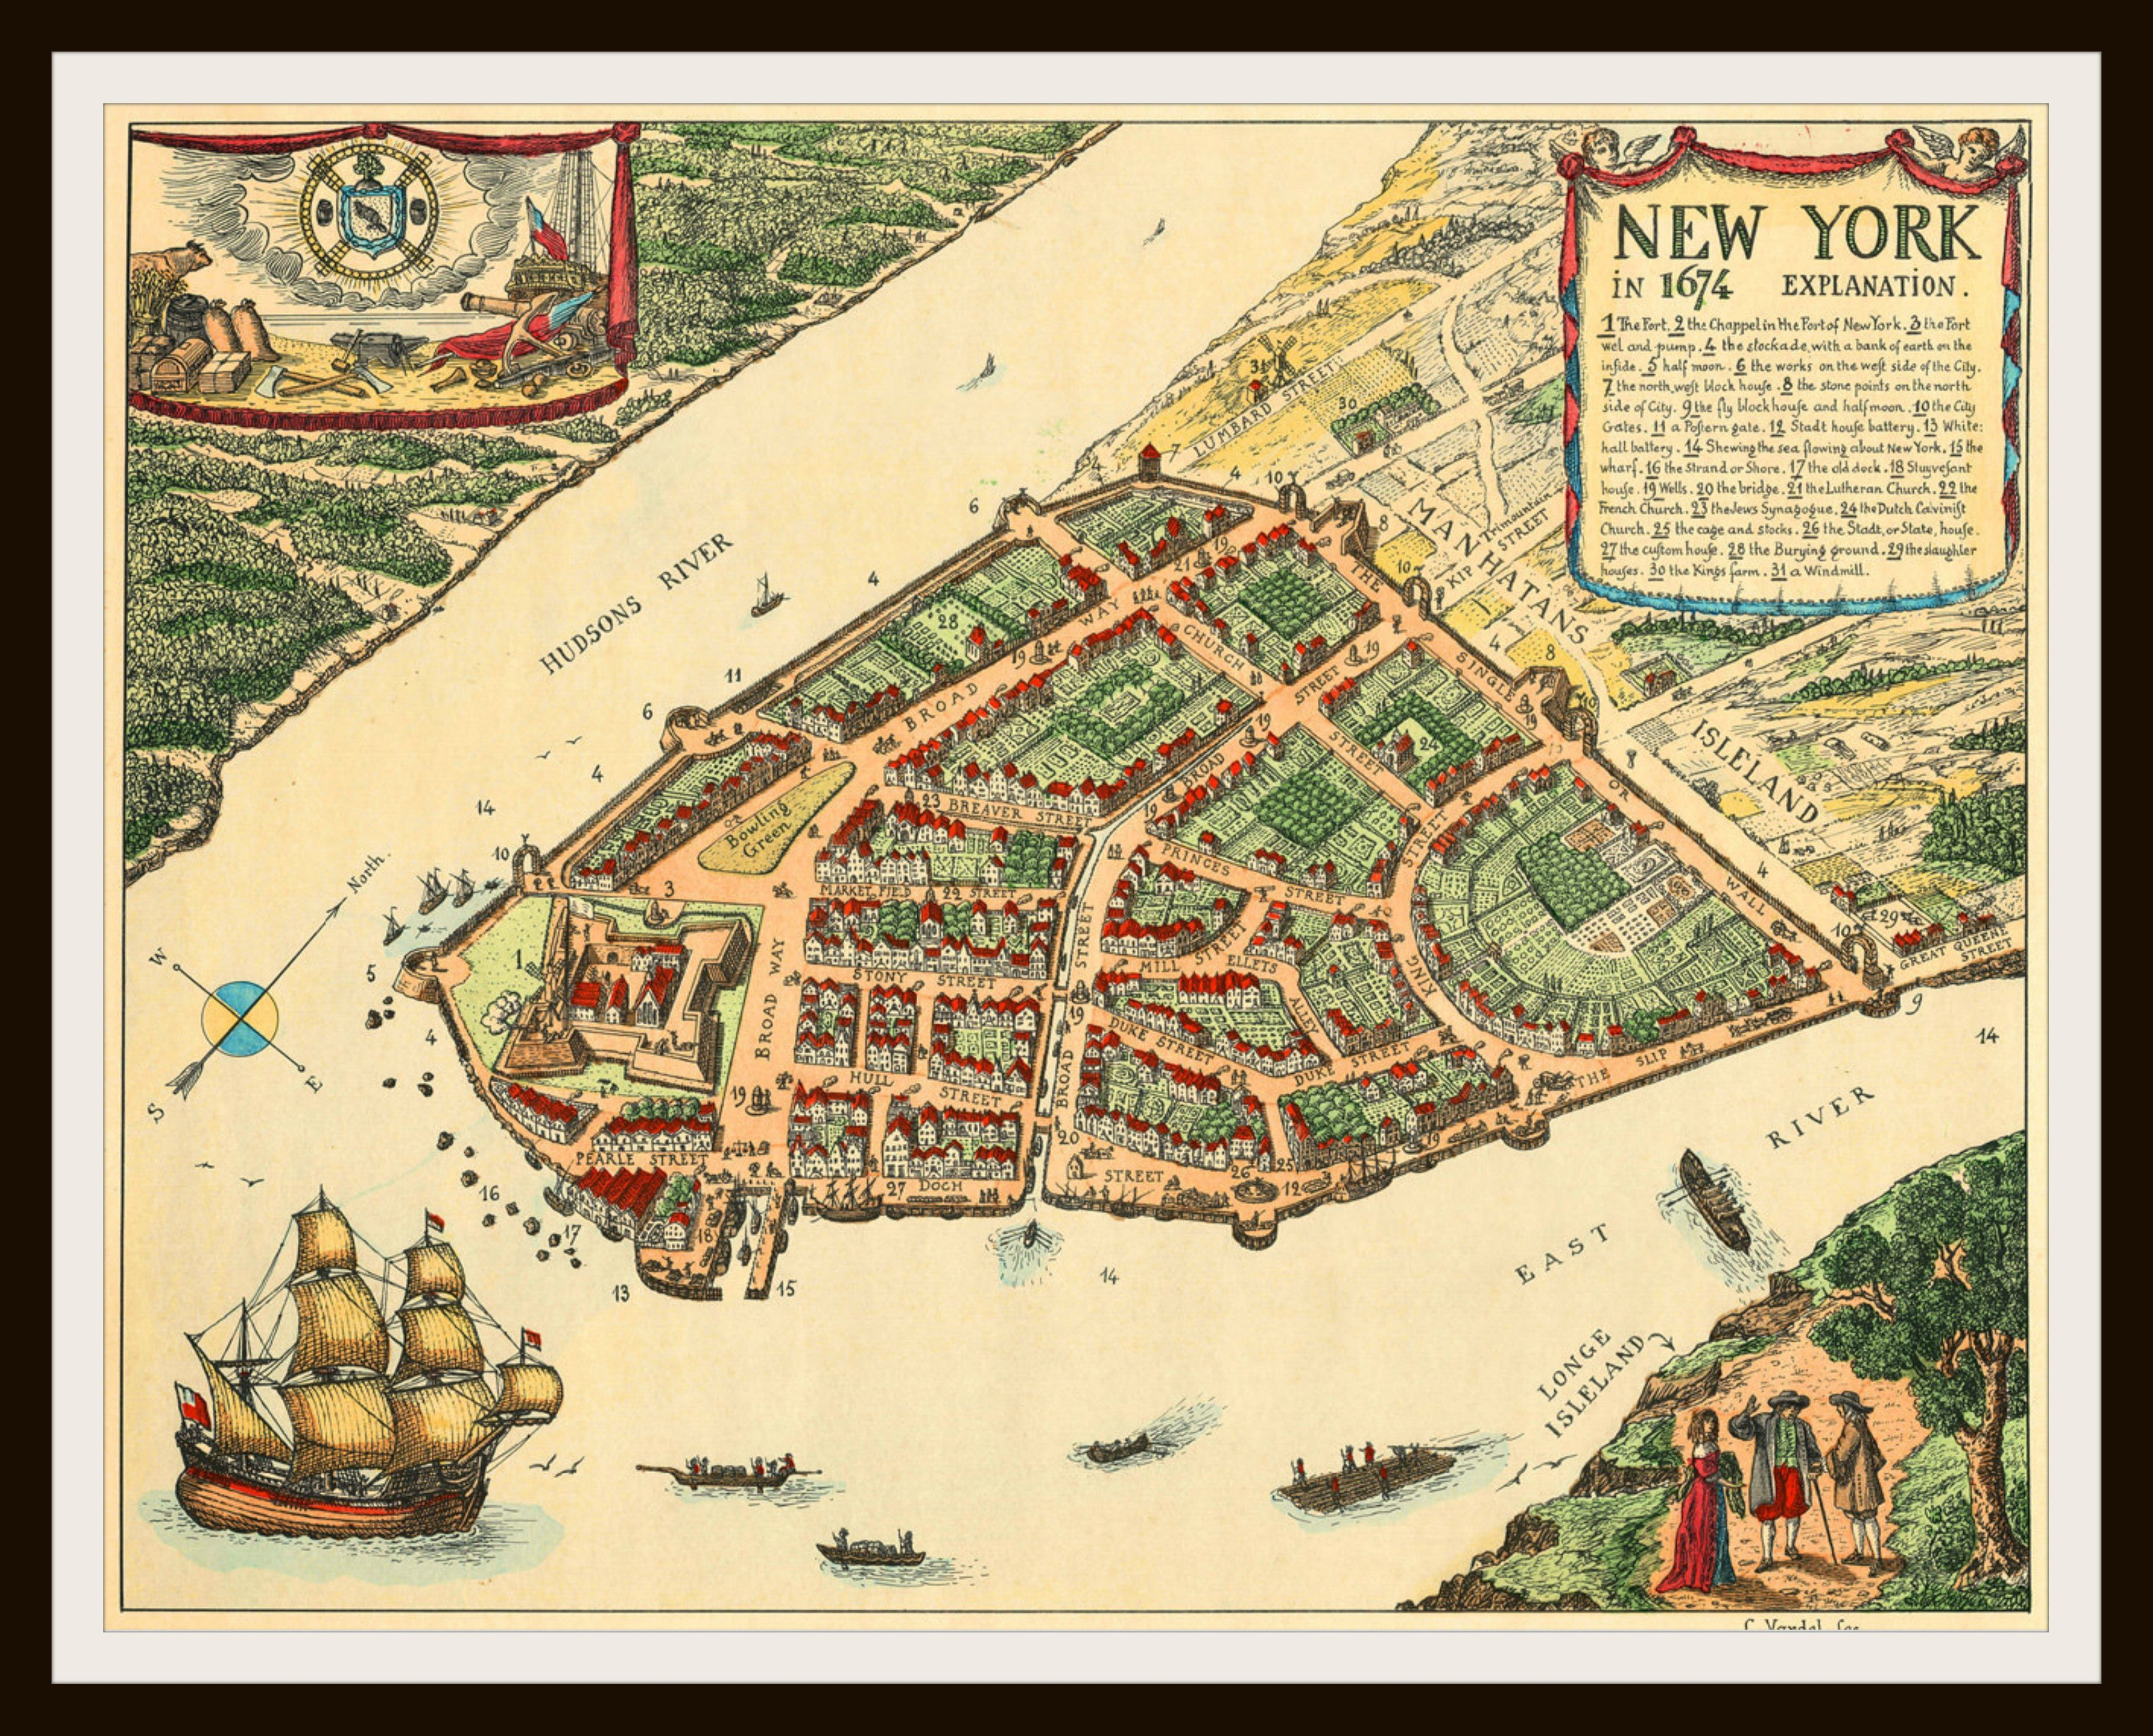 Printed Vintage New York City 1674 Poster Art Image Reproduction Sheet Wall Home Decor Unframed A Great Gift Idea For Your